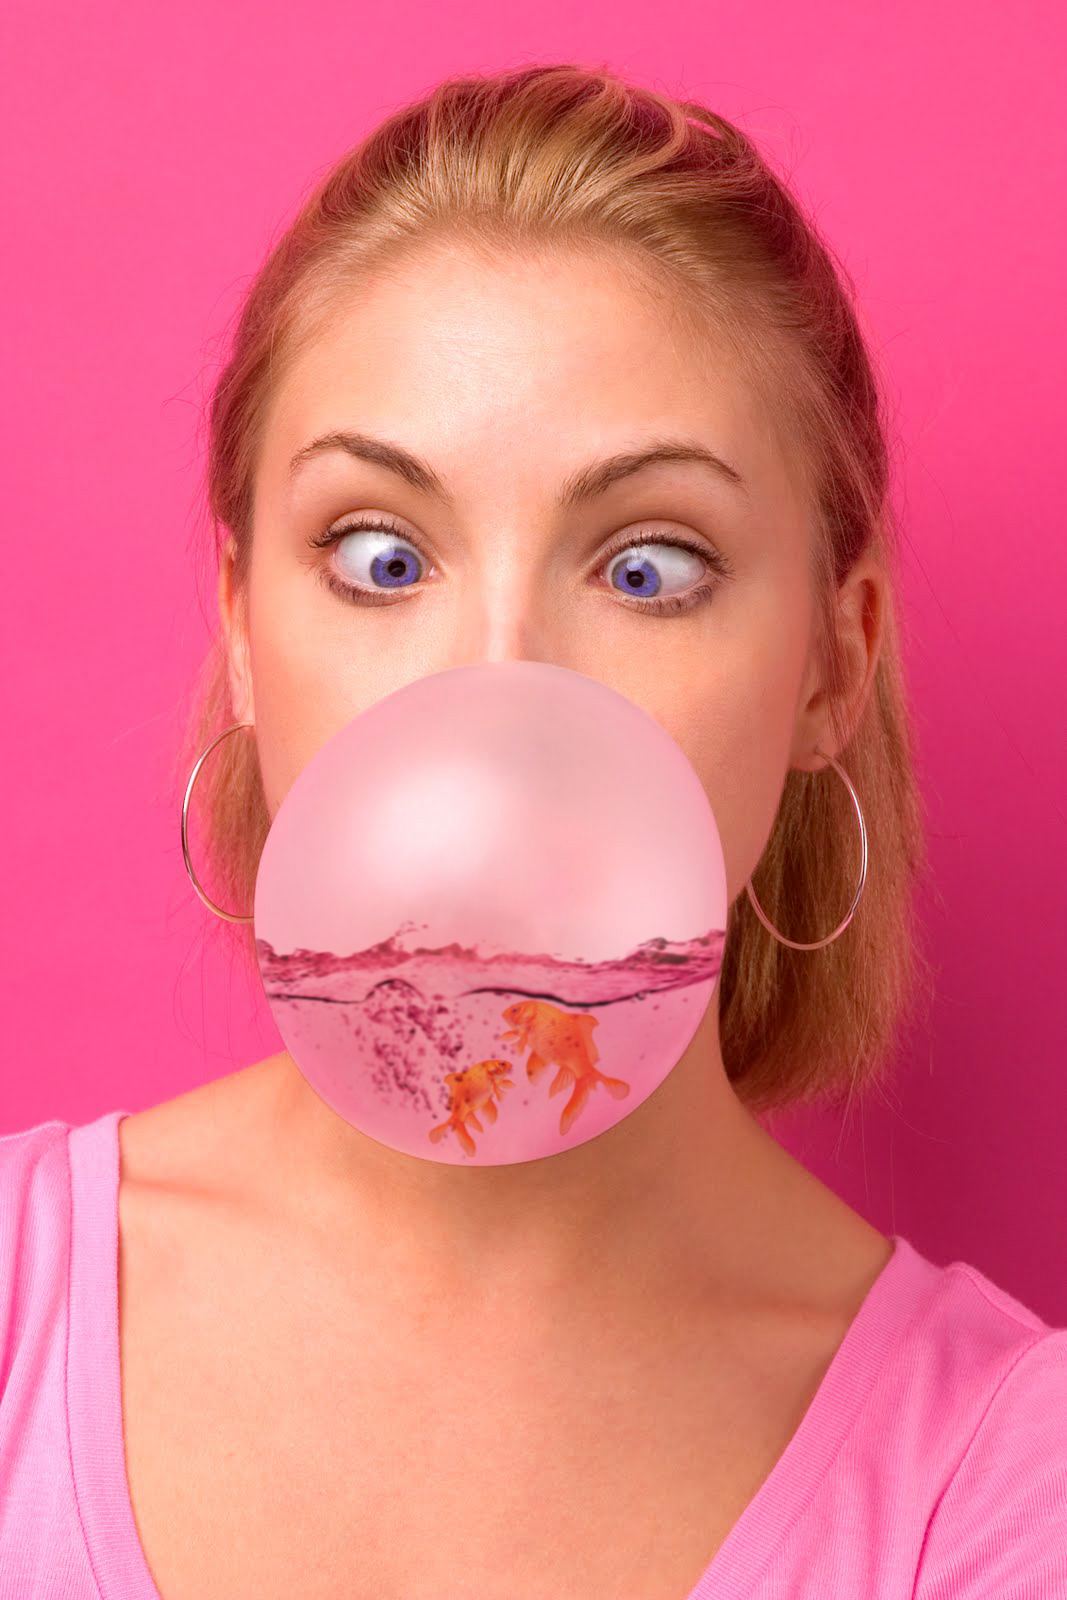 Portrait girl blowing chewing gum high resolution stock photography and images